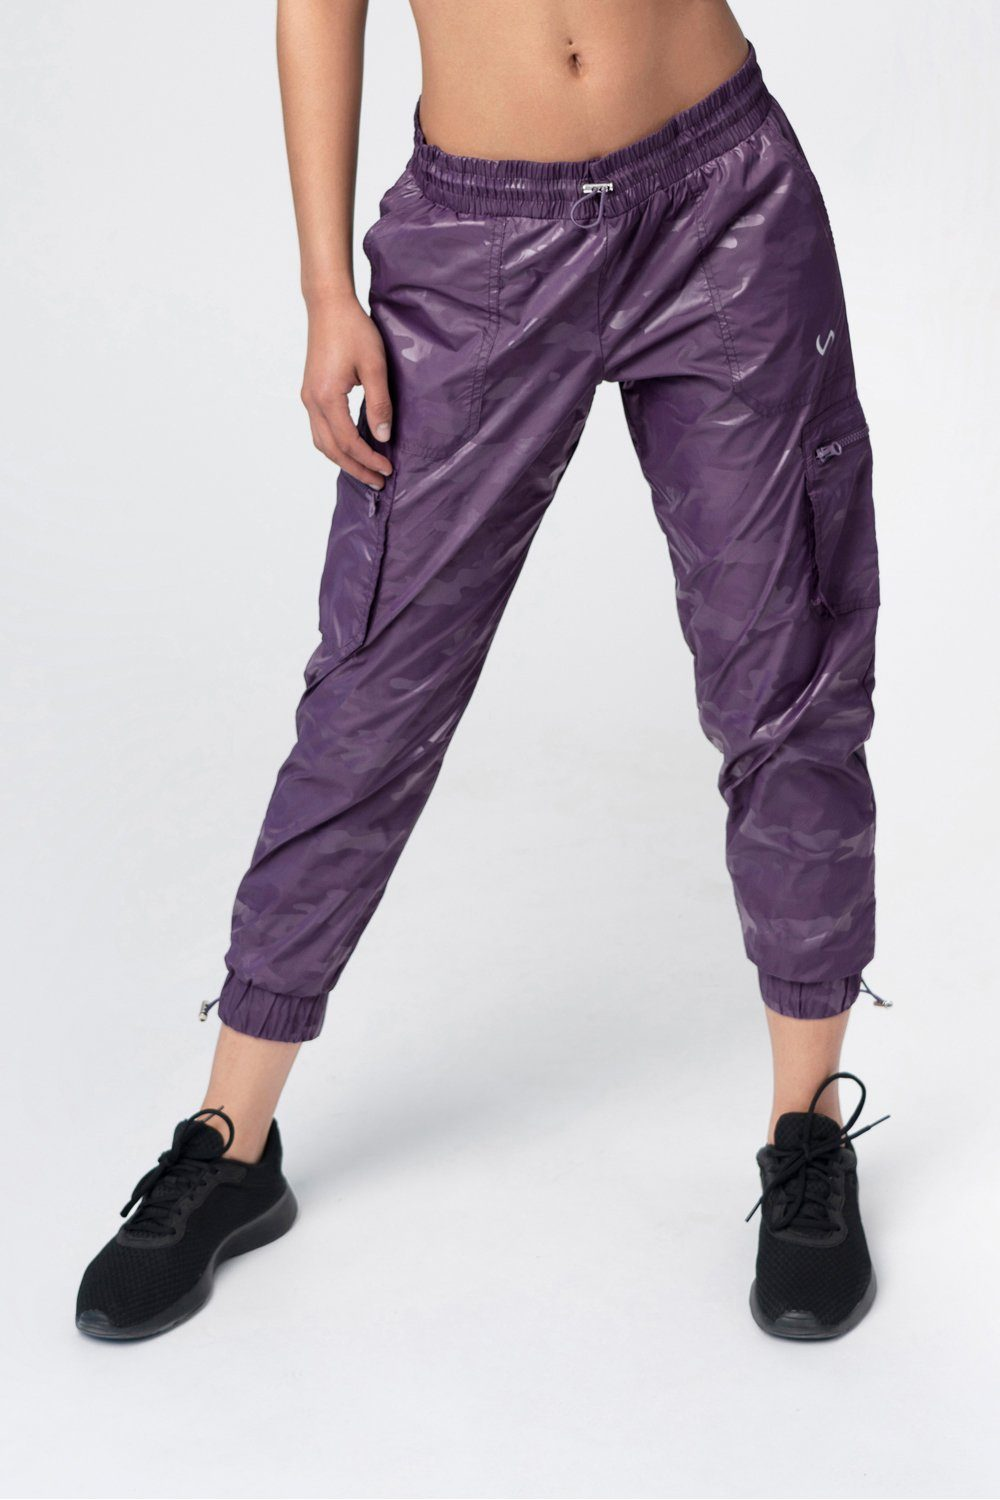 Covert Camo Gym To Street Joggers - Purple